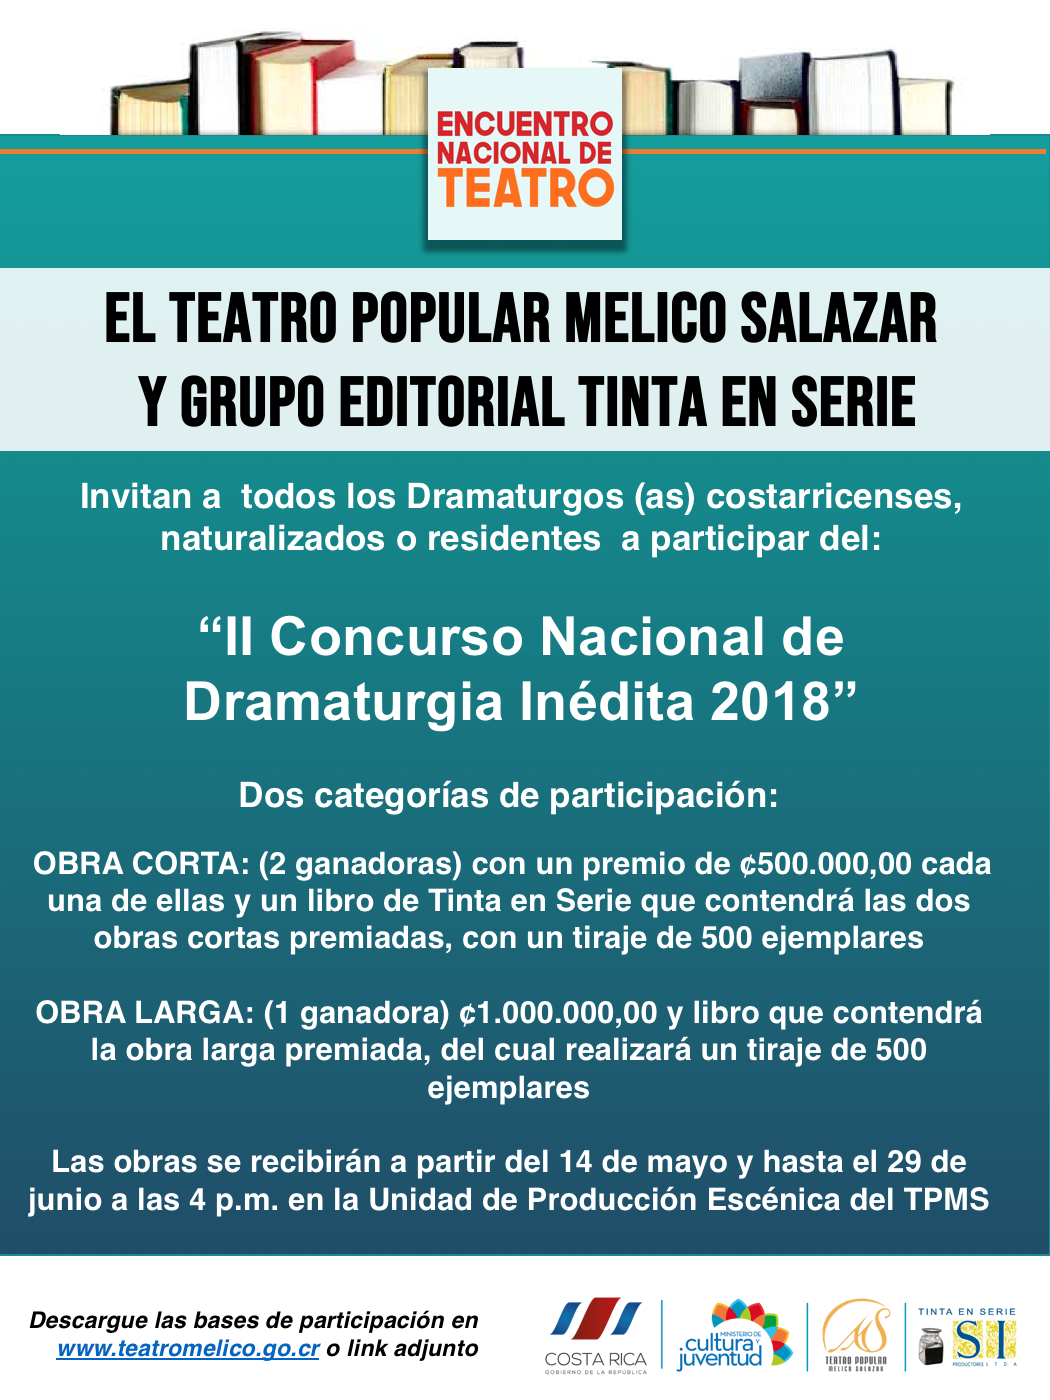 https://teatromelico.go.cr/images/IIConcurso2018.png